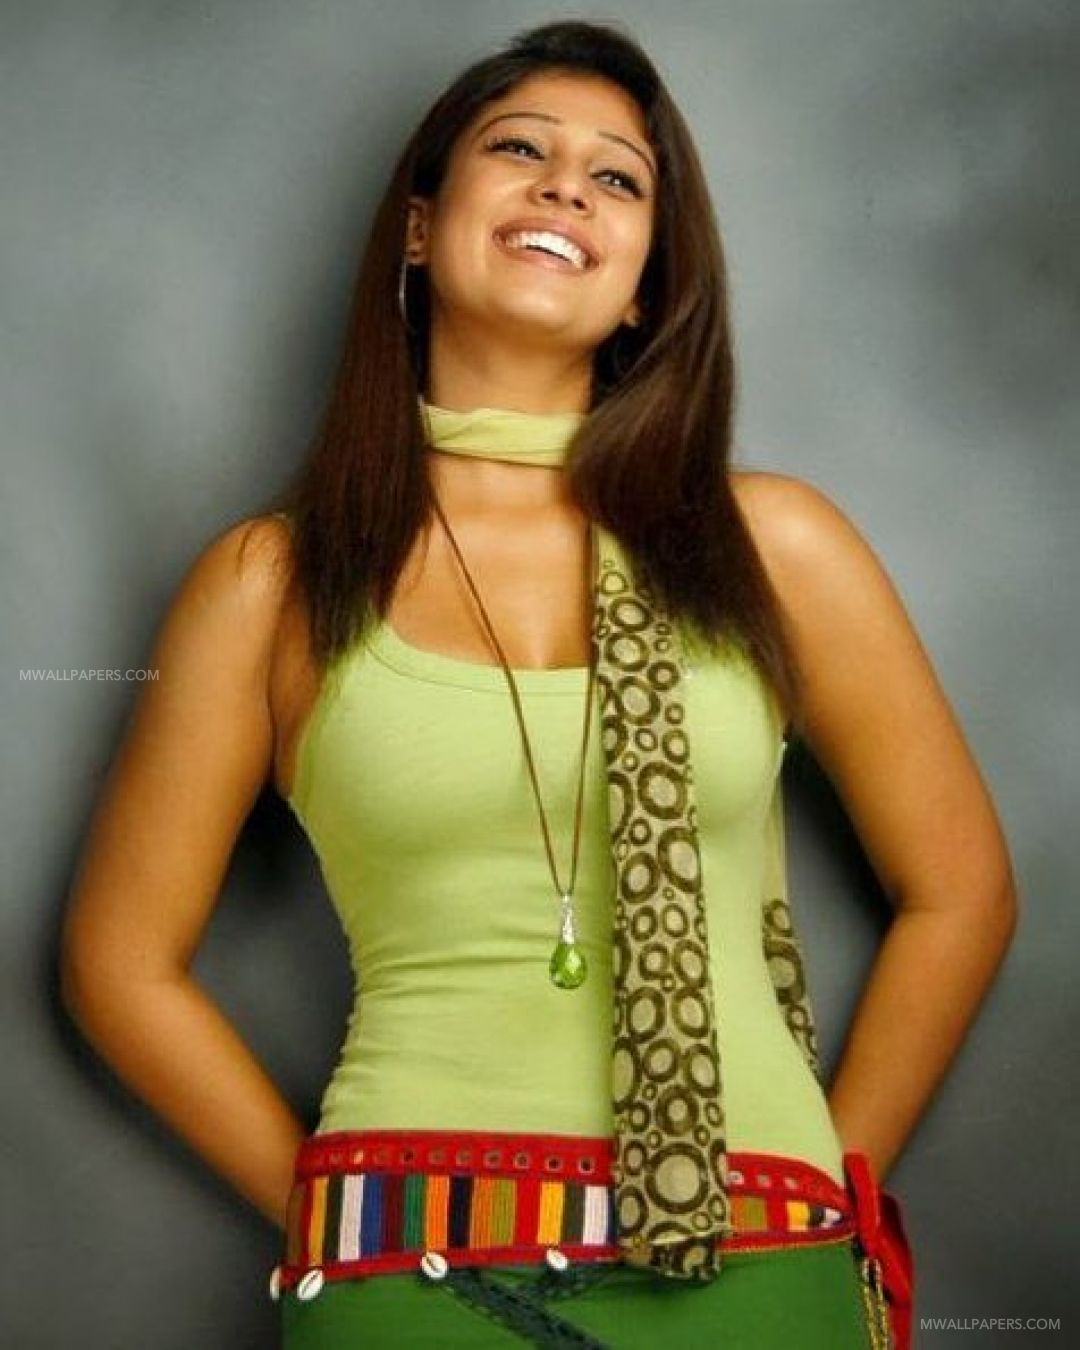 1285 Nayanthara Hd Wallpapers Desktop Background Android Iphone 1080p 4k 1080x1350 2020